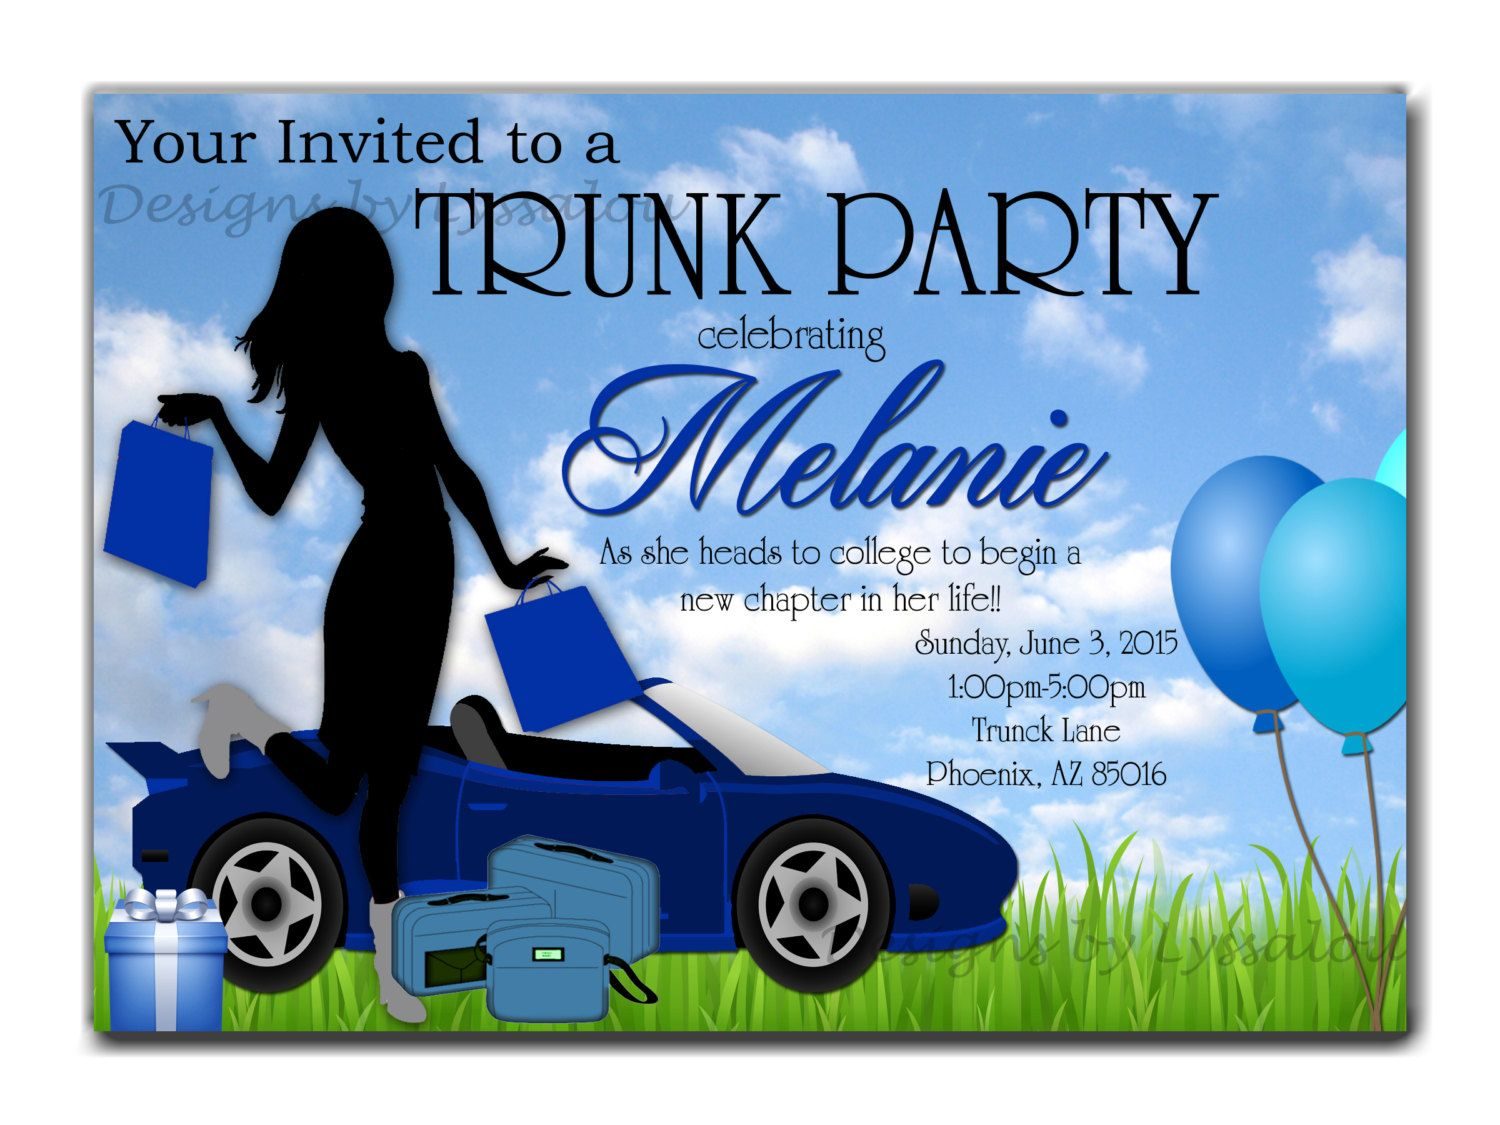 College Trunk Party Invitation Wording